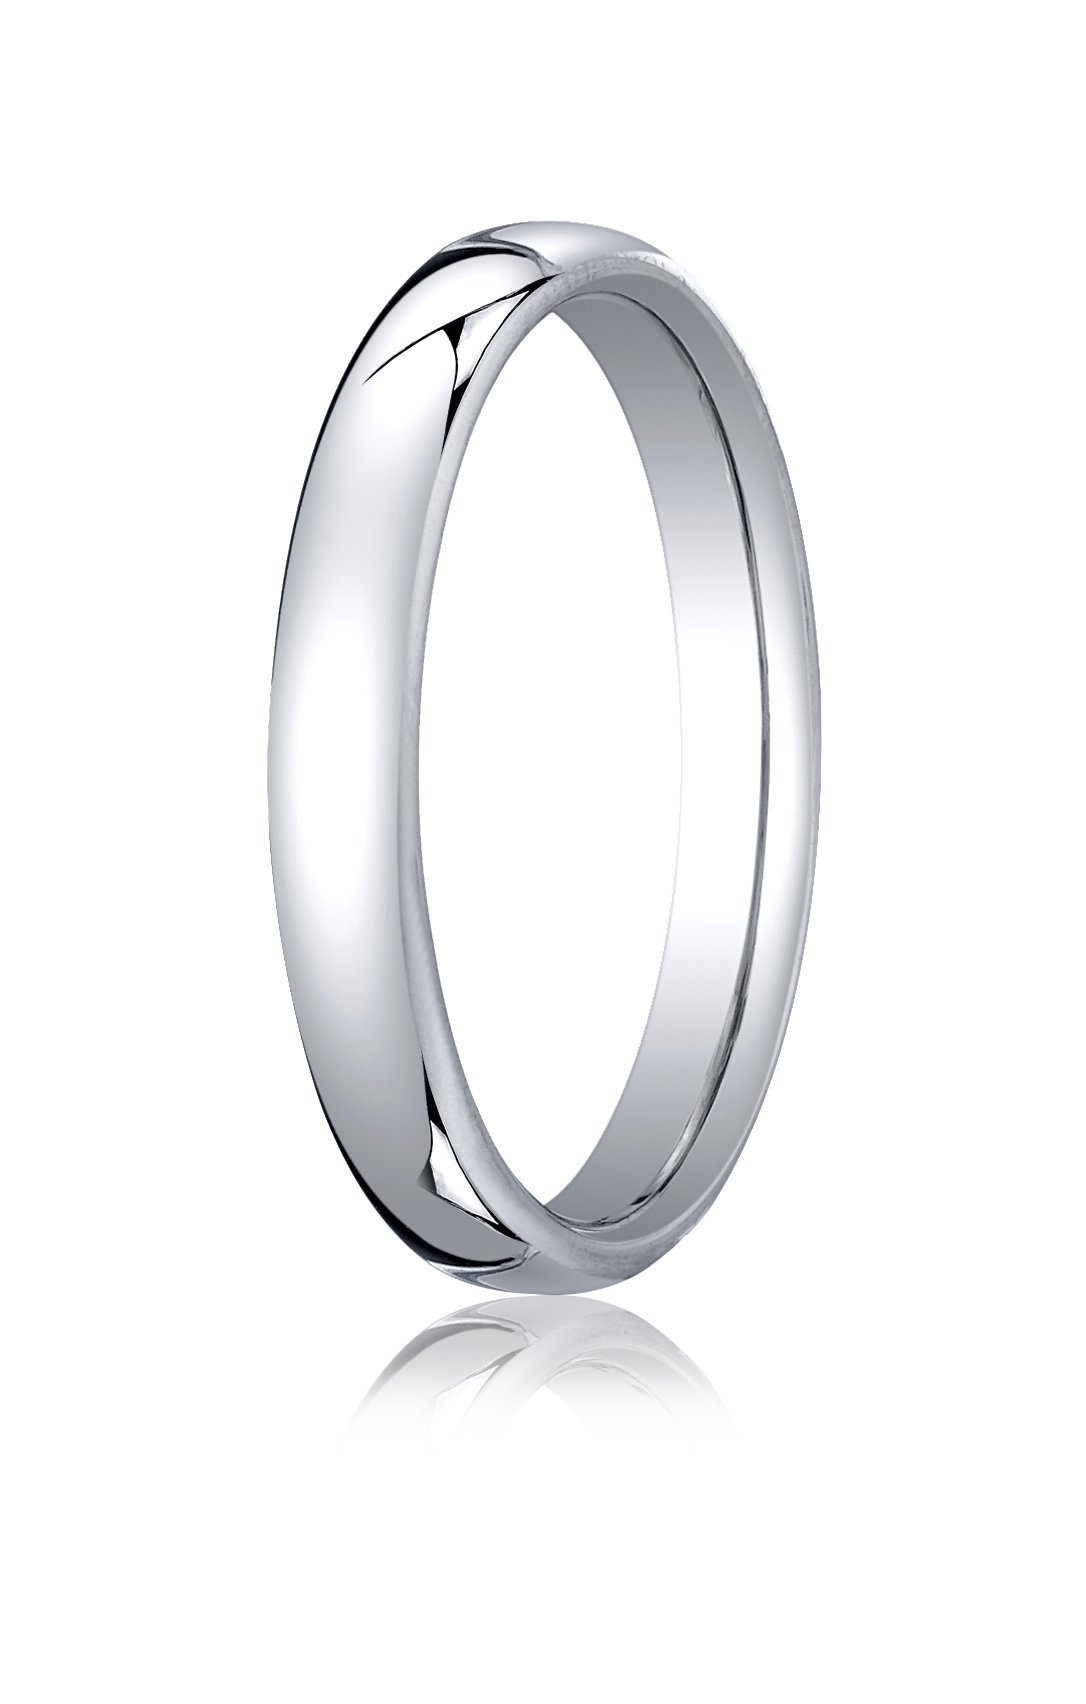 Mens 10K White Gold, 3.5mm London Couture Comfort-Fit Ring (sz 8)